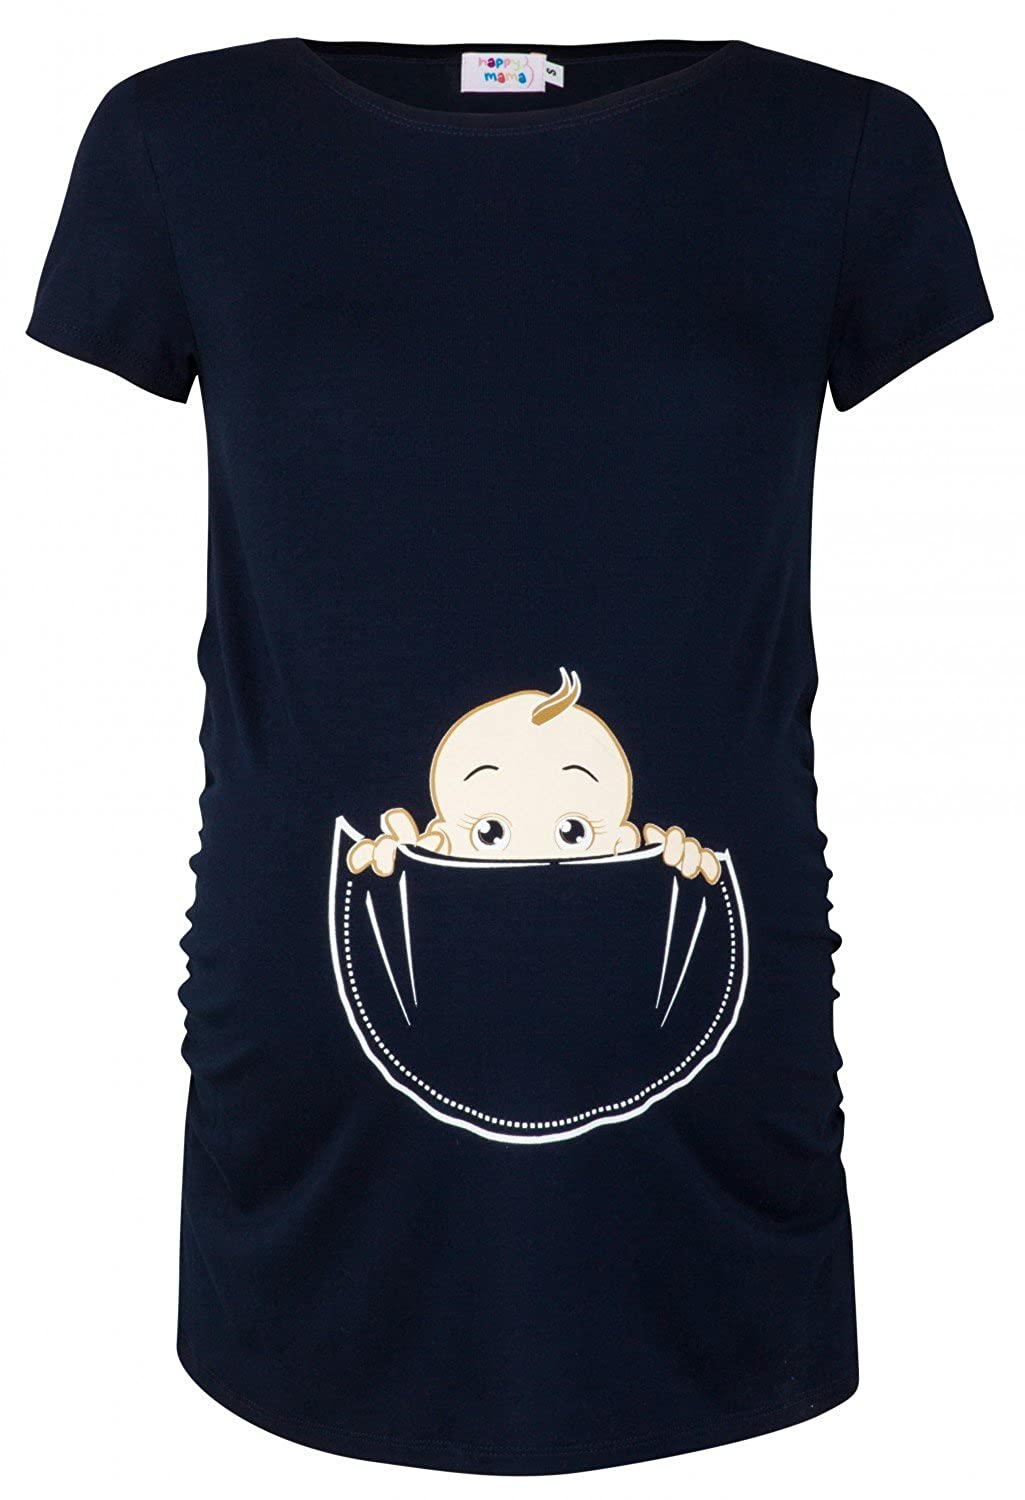 Happy Mama. Womens Maternity Baby in Pocket Print T-shirt Top Tee Shirt. 501p pregtop_501